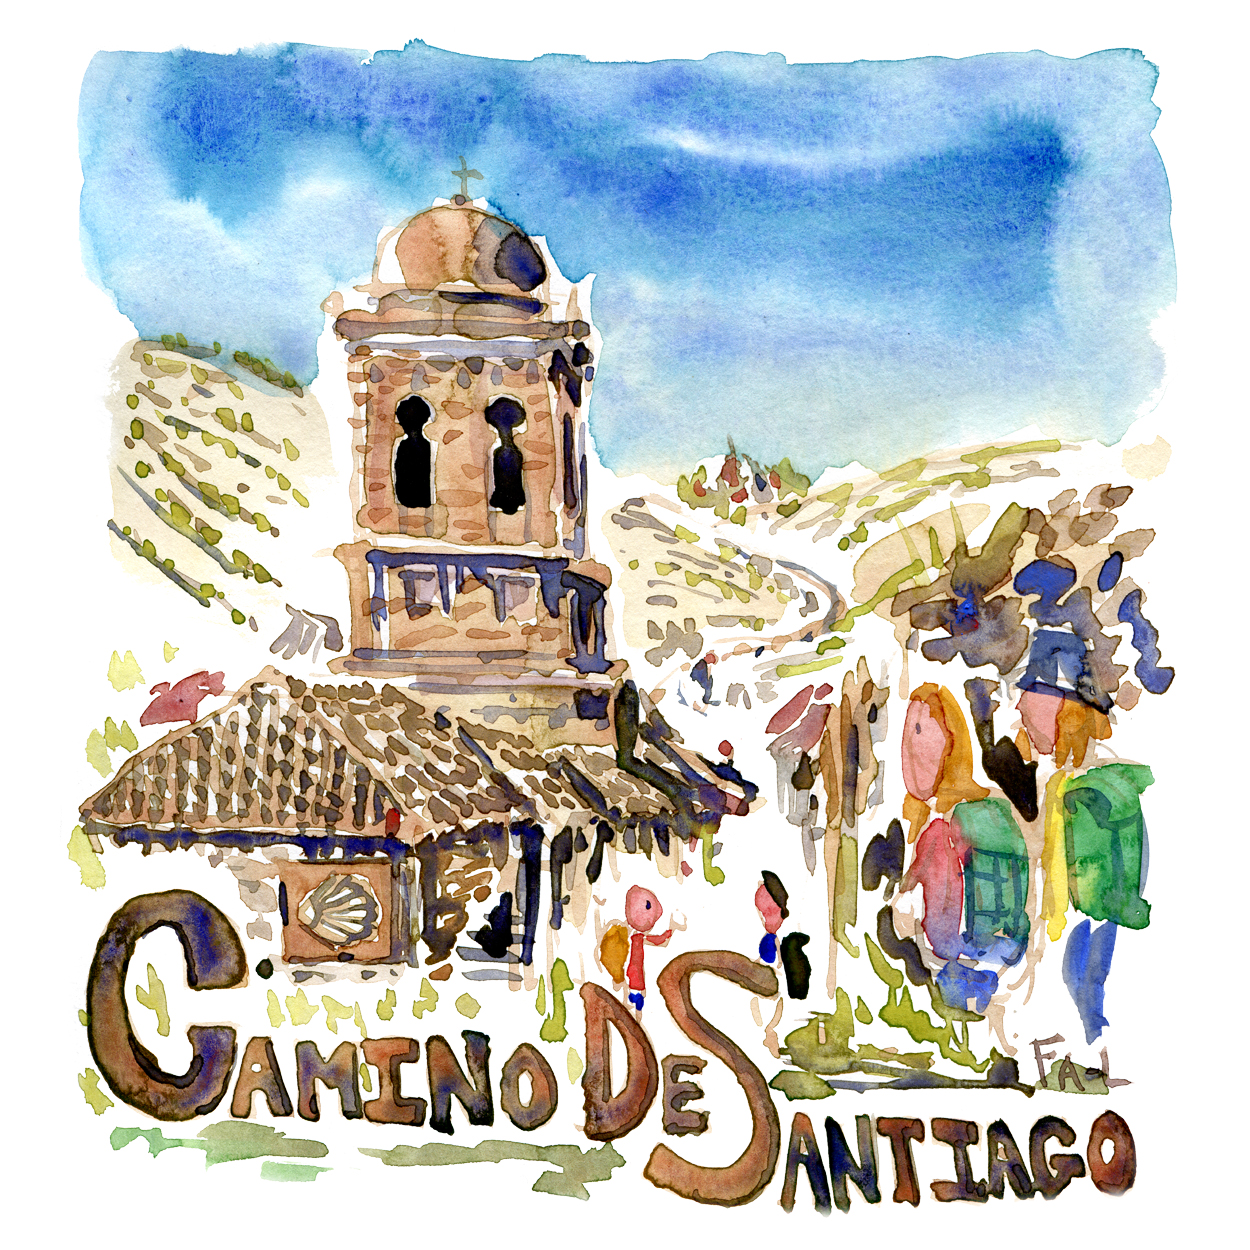 Watercolor of the Camino De Santiago pilgrimage trail, painting by Frits Ahlefeldt